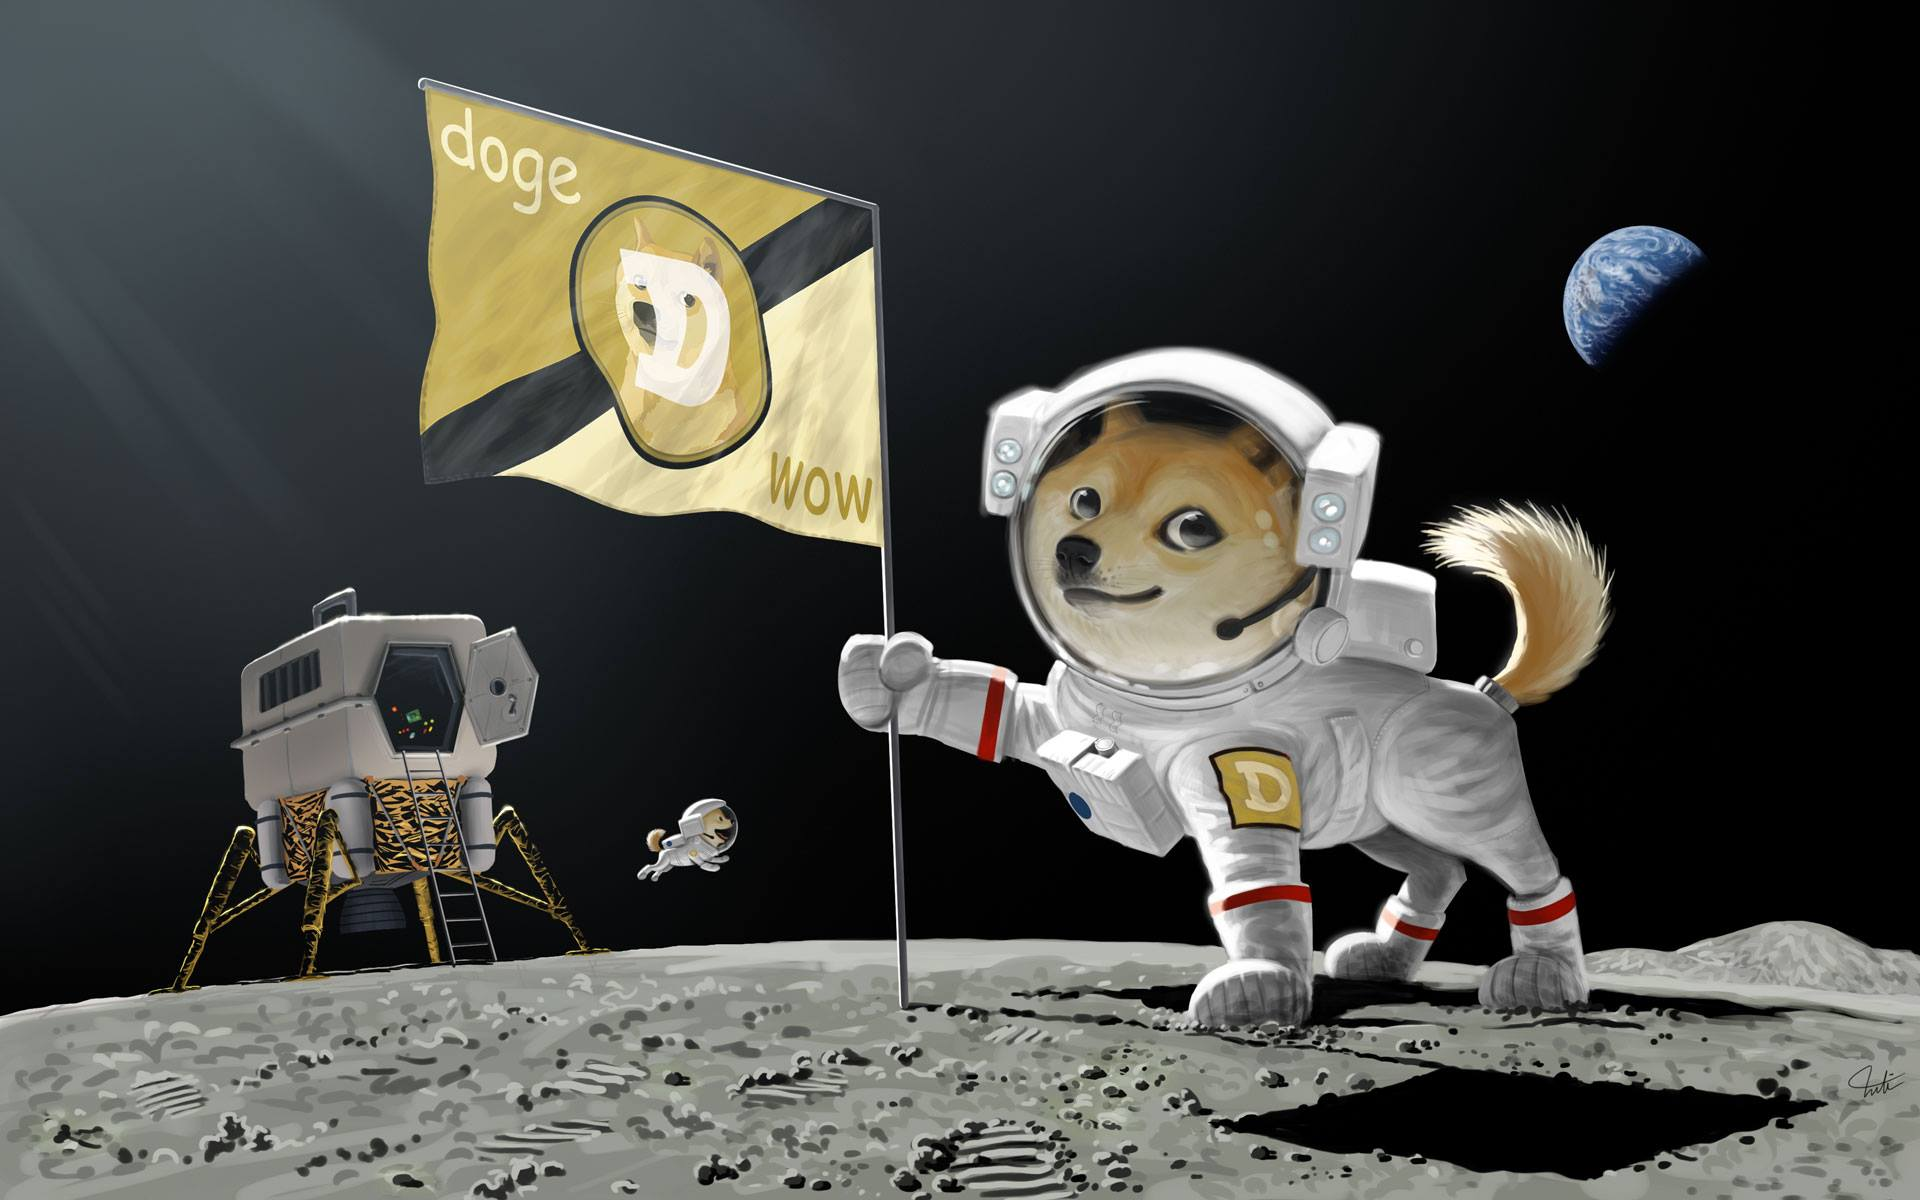 What Exactly Is Dogecoin, And Why Is Everyone Talking About It?